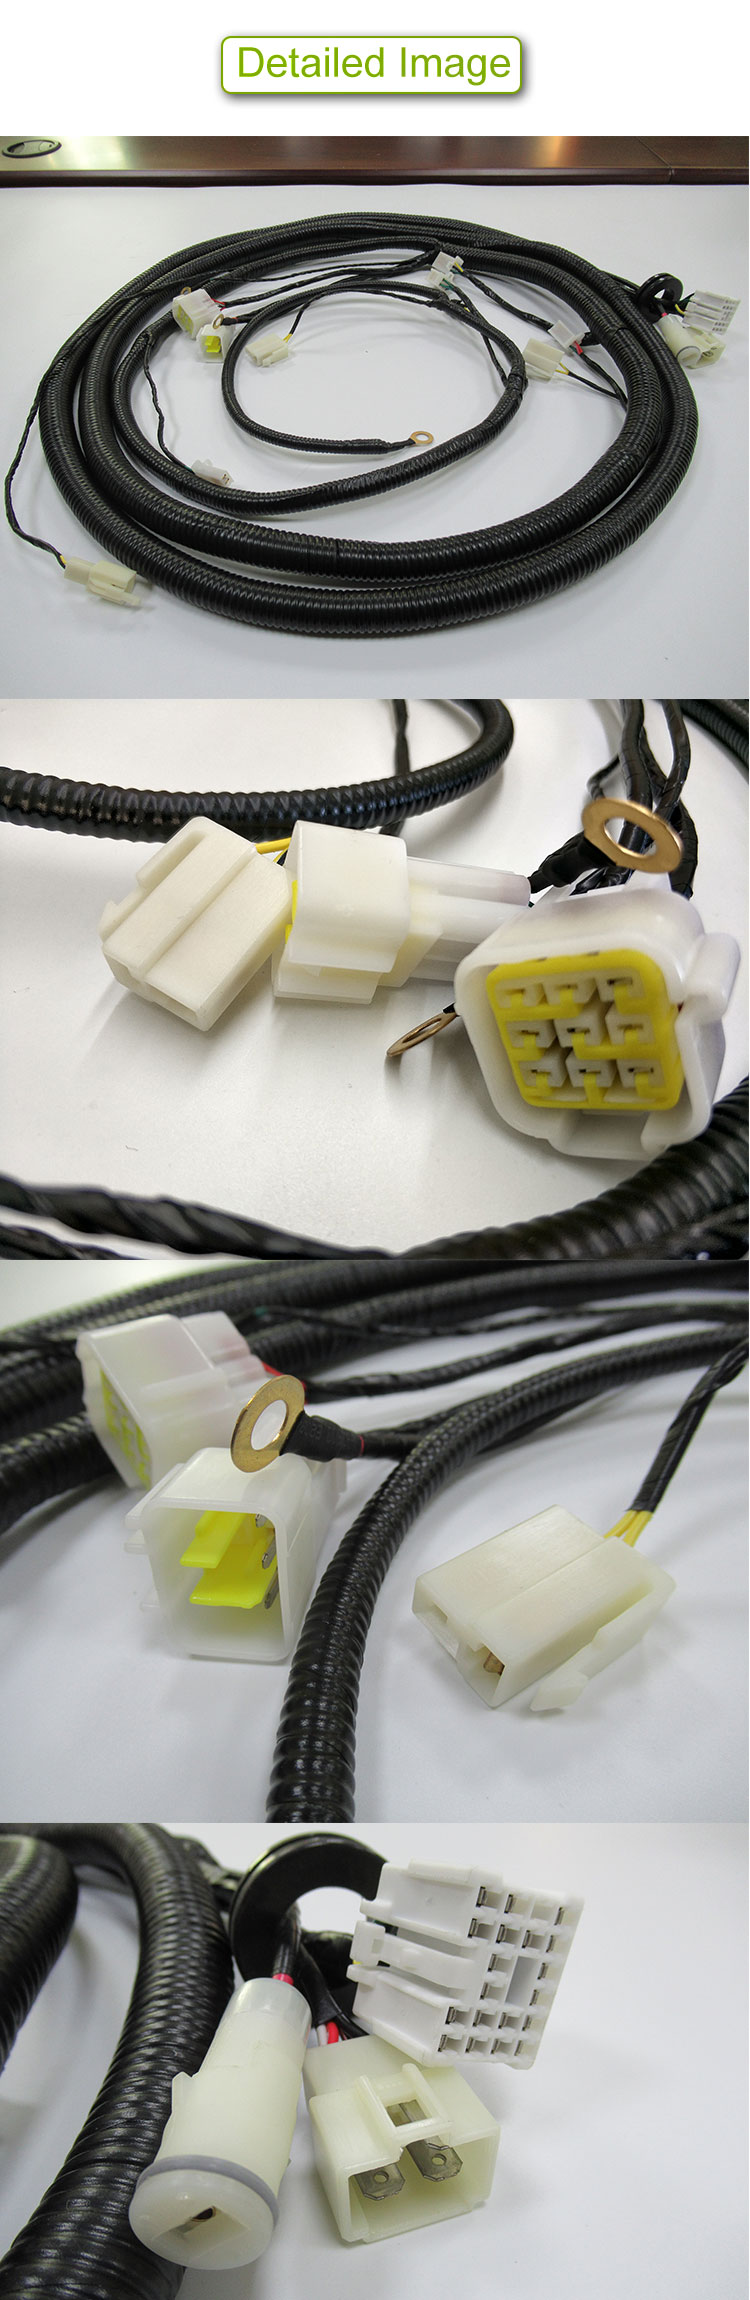 new energy customize car door wire harness  electric vehicle  wire